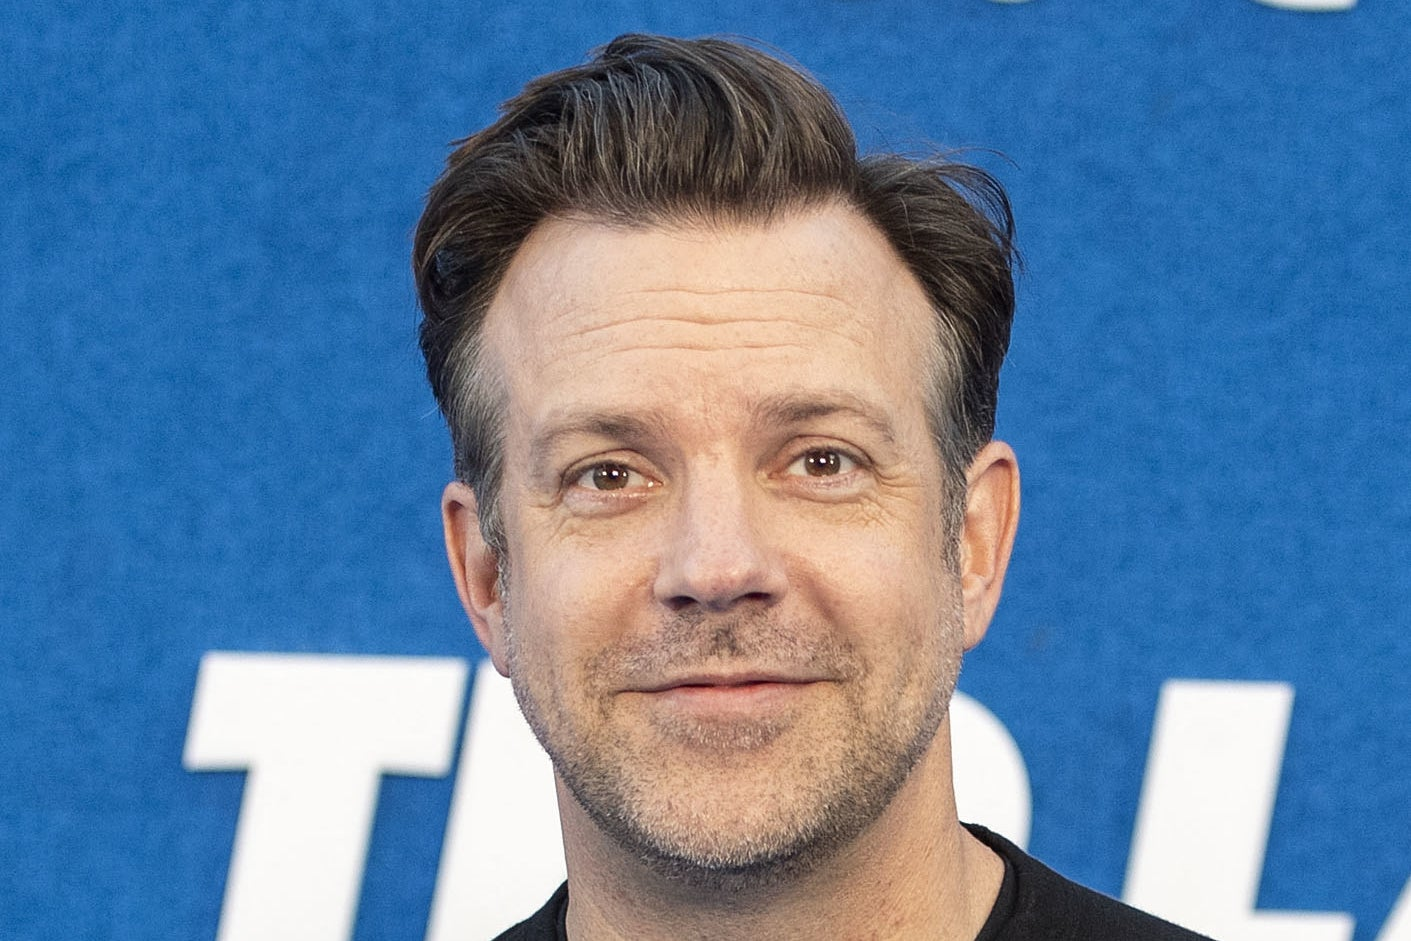 Jason Sudeikis Revealed Why He Doesn't Go By His Birth Name Daniel And It Makes A Lot Of Sense